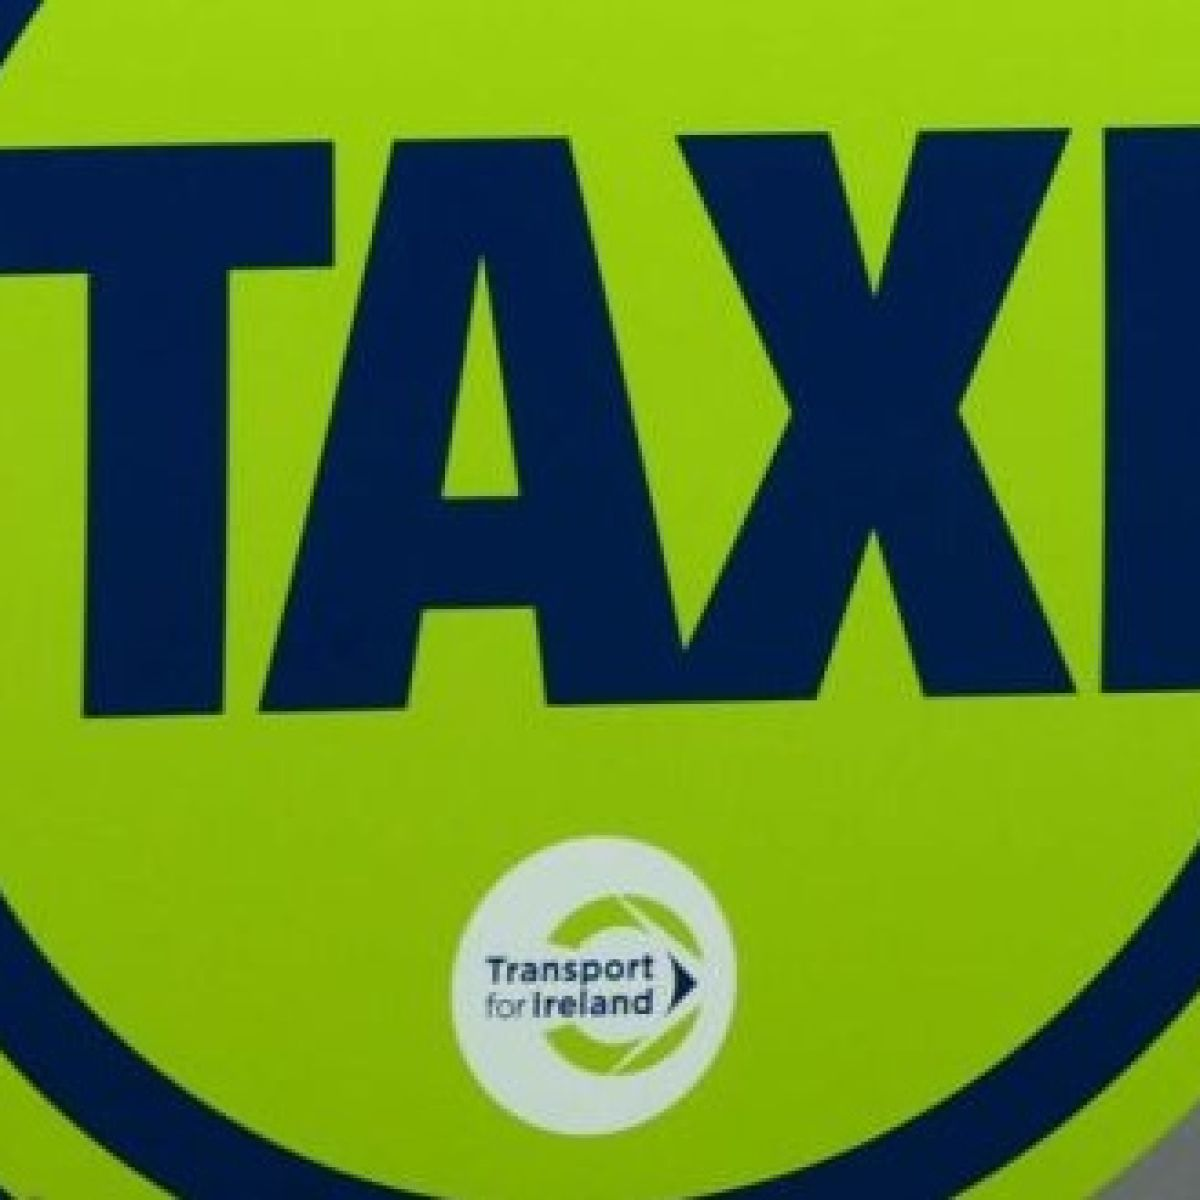 Dublin Airport taxi drivers using Topaz as unofficial wait area